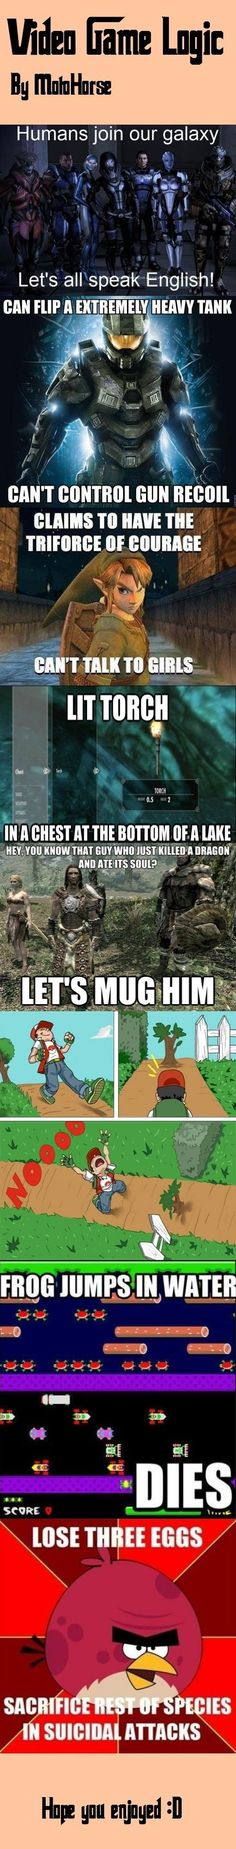 Video Game Logic - www.meme-lol.com